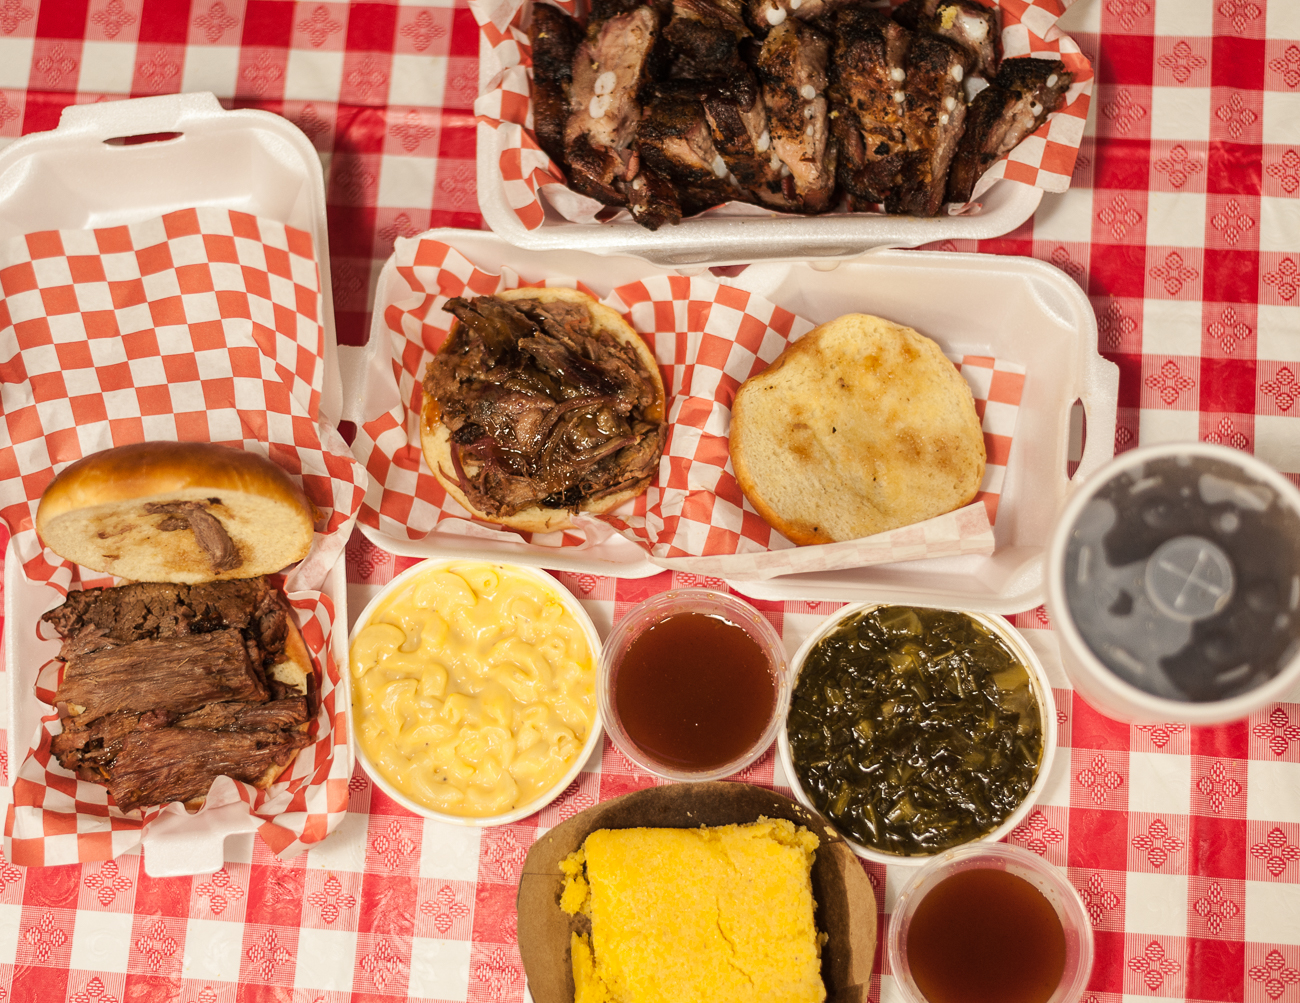 Corn bread, mac & cheese, full brisket sandwich, pulled pork sandwich, rib tips, soft drink, and collard greens / Image: Kellie Coleman // Published: 6.19.20